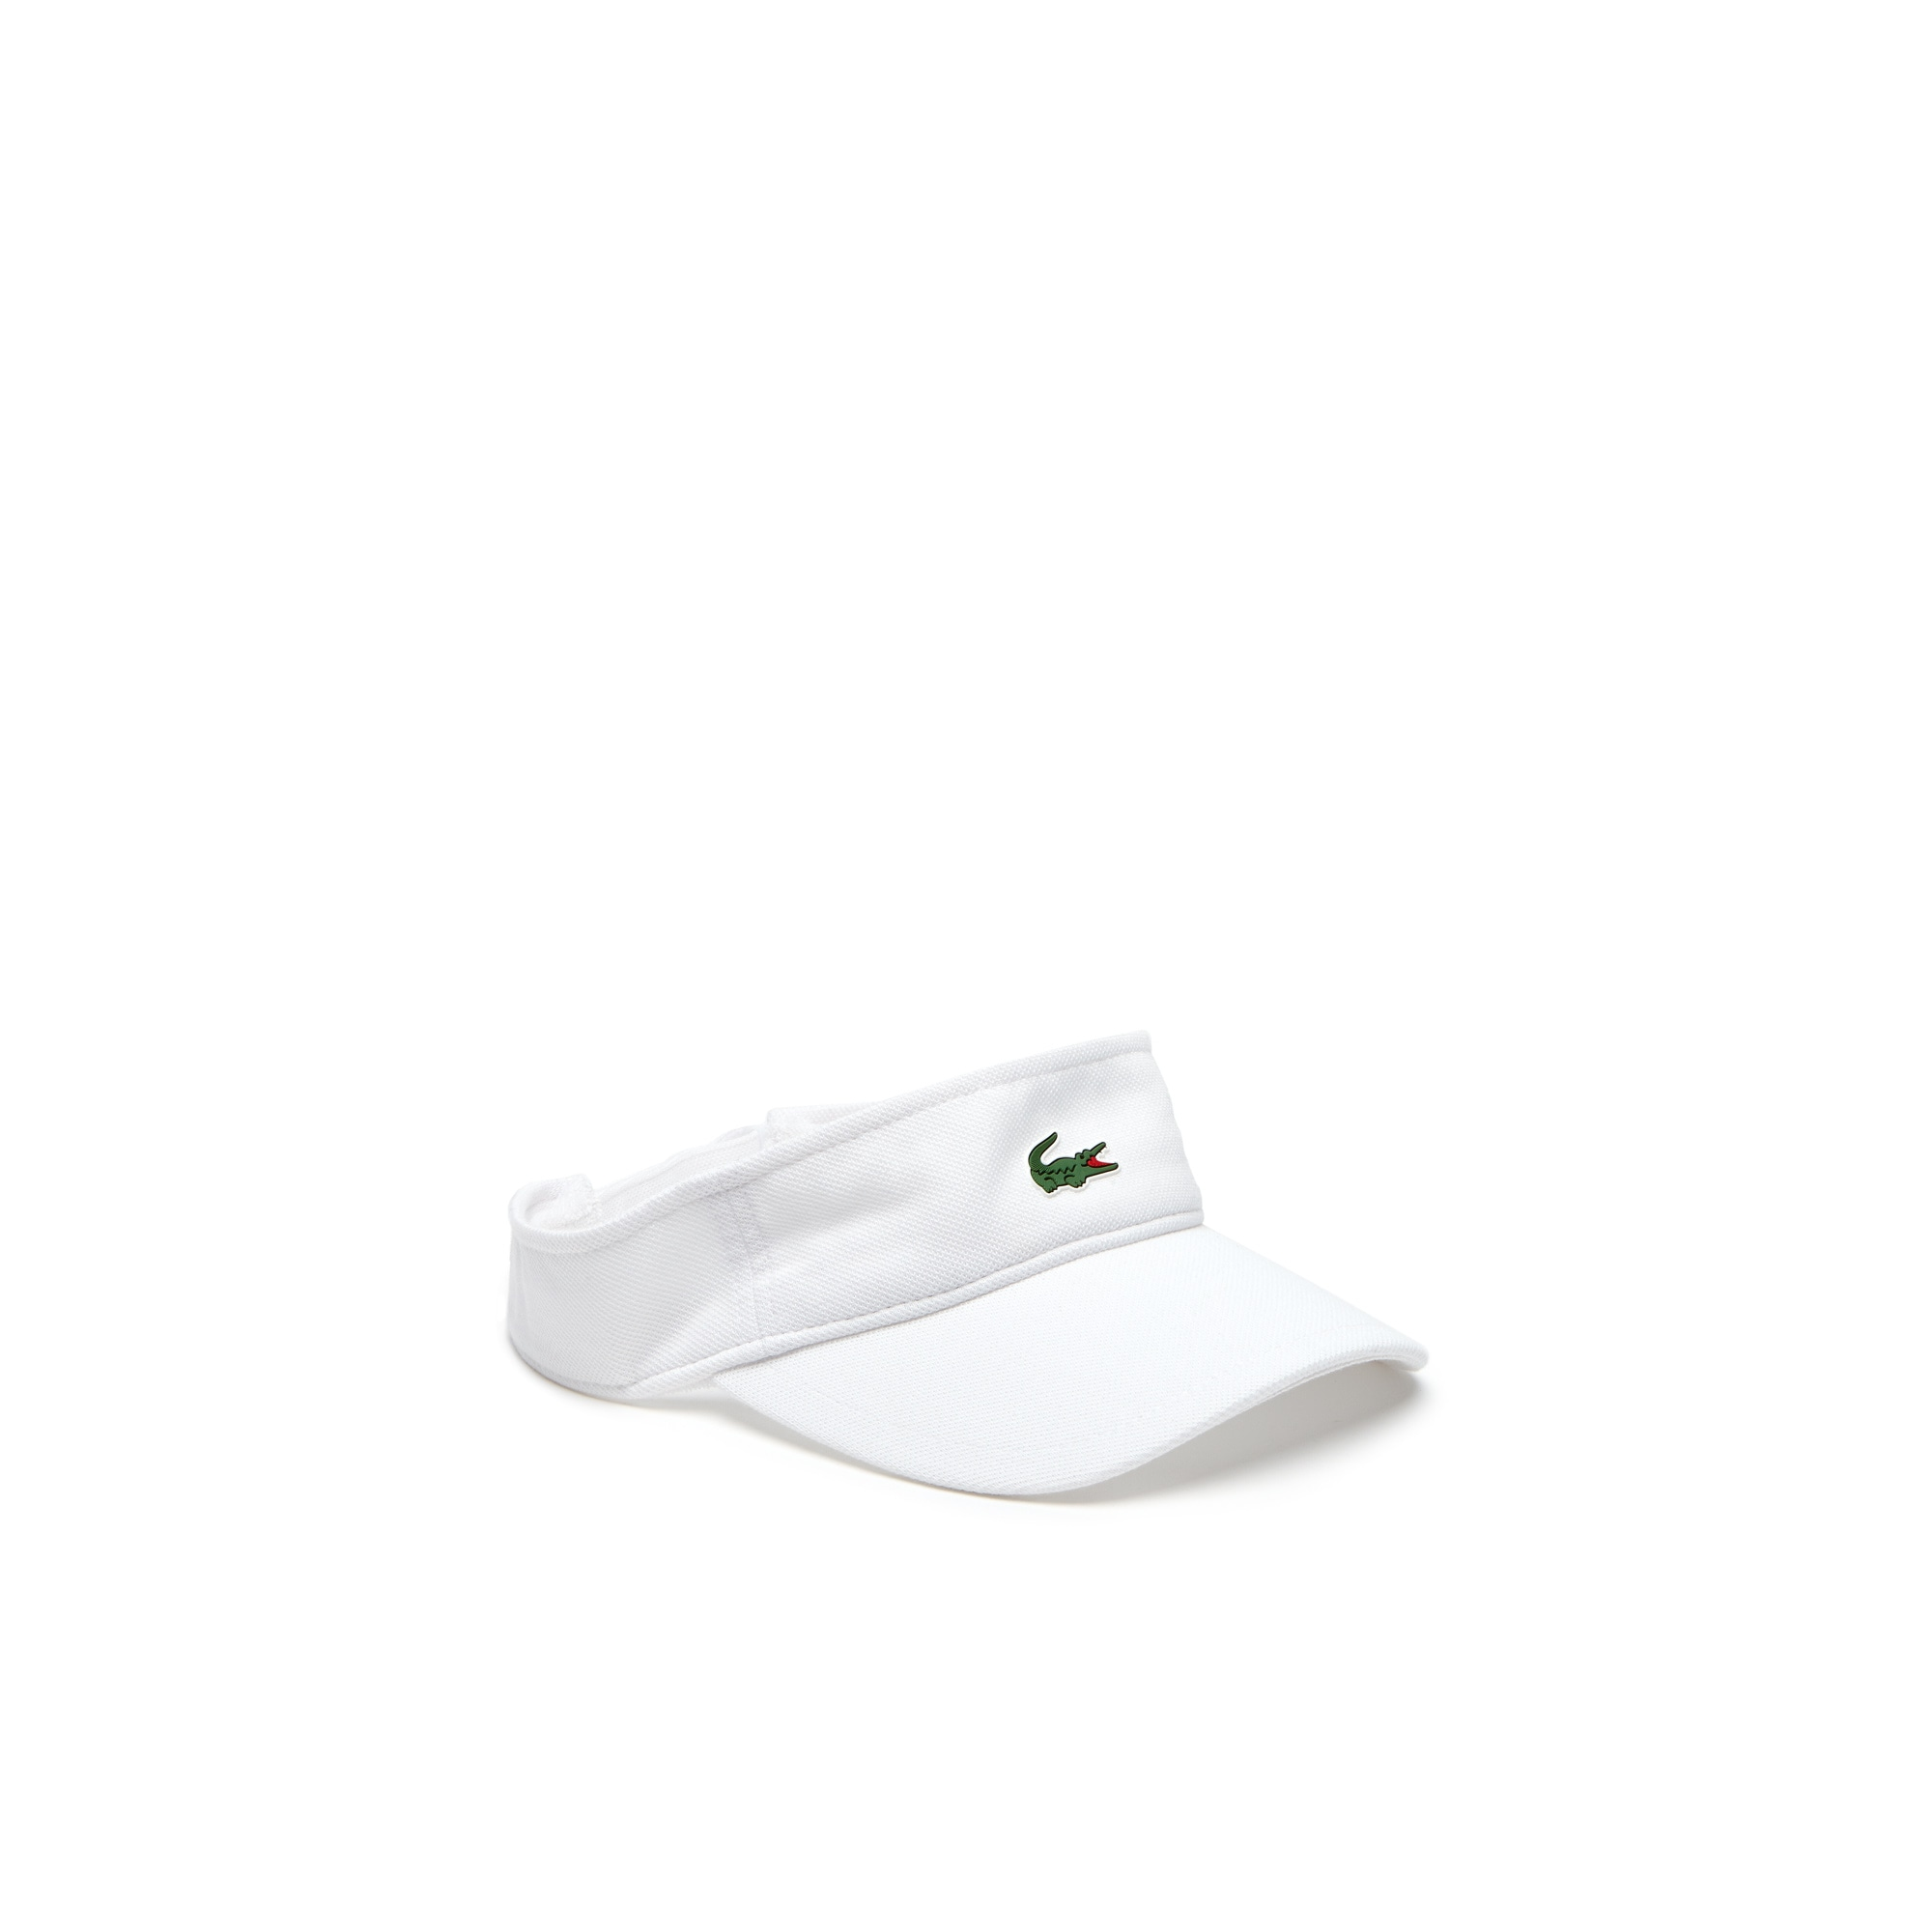 Men's Lacoste SPORT Piqué And Fleece Tennis Visor